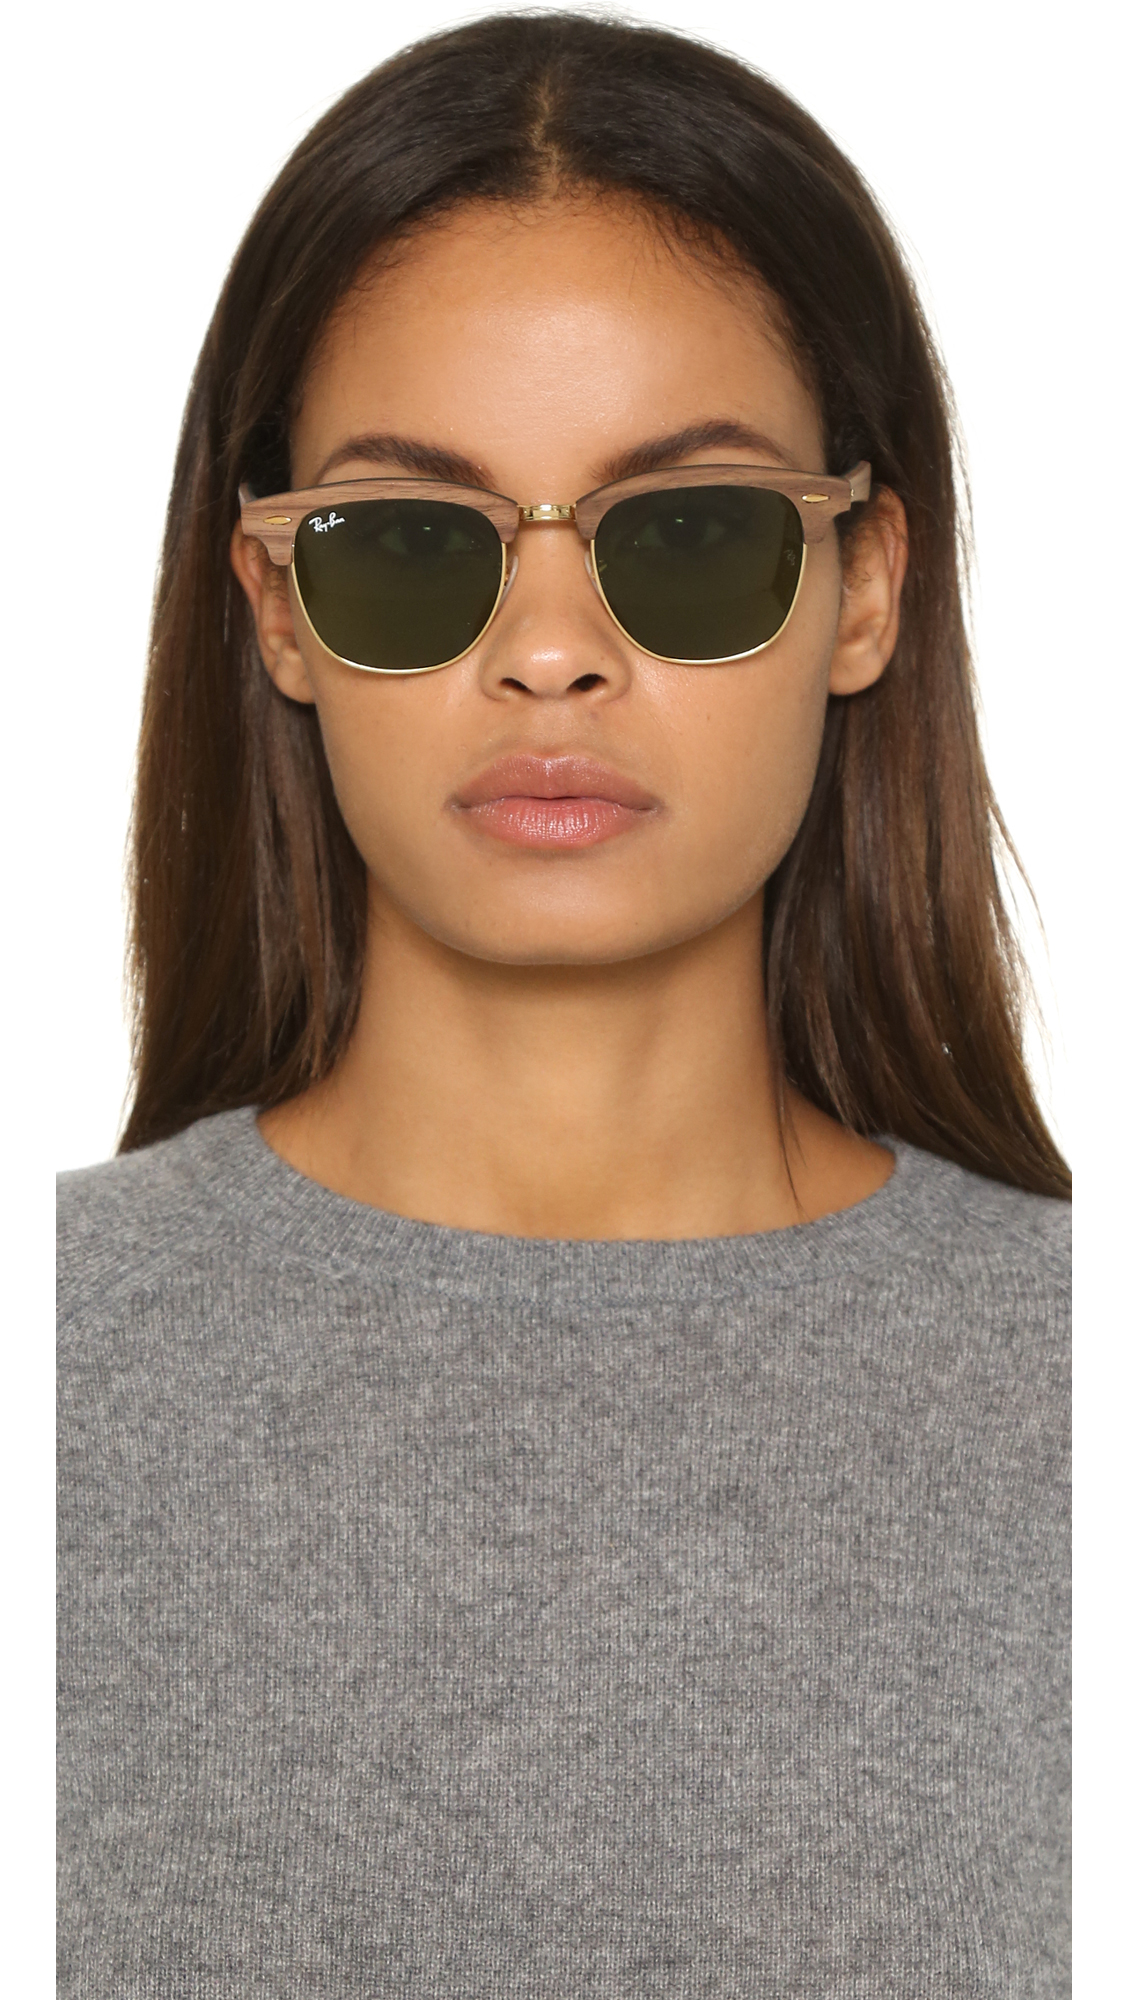 clubmaster acetate sunglasses  Ray-ban Clubmaster Wood Sunglasses in Brown